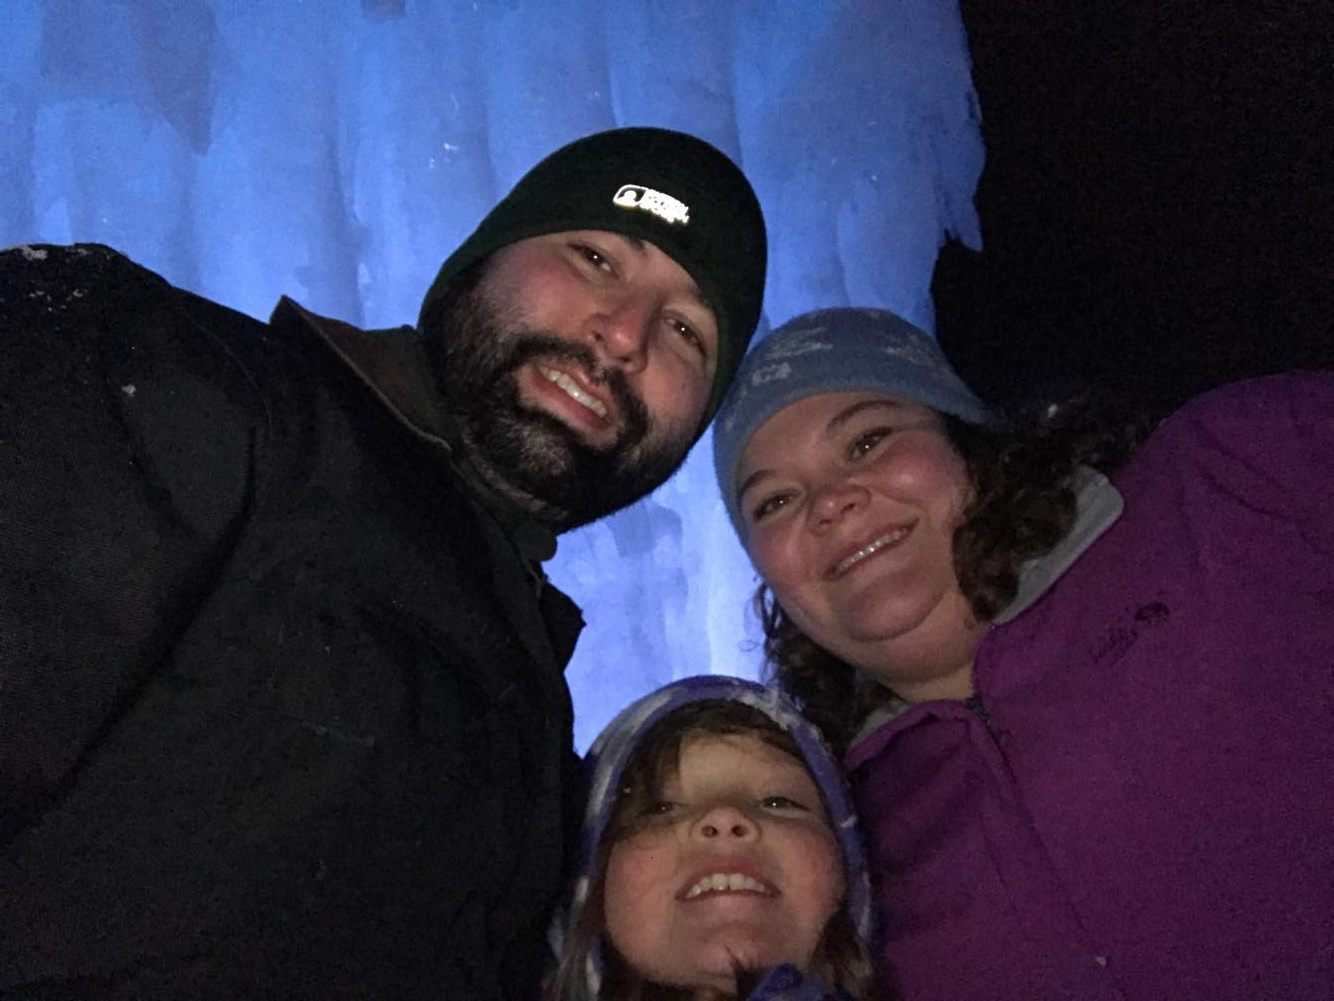 Exploring the Ice Castles in Lincoln, NH